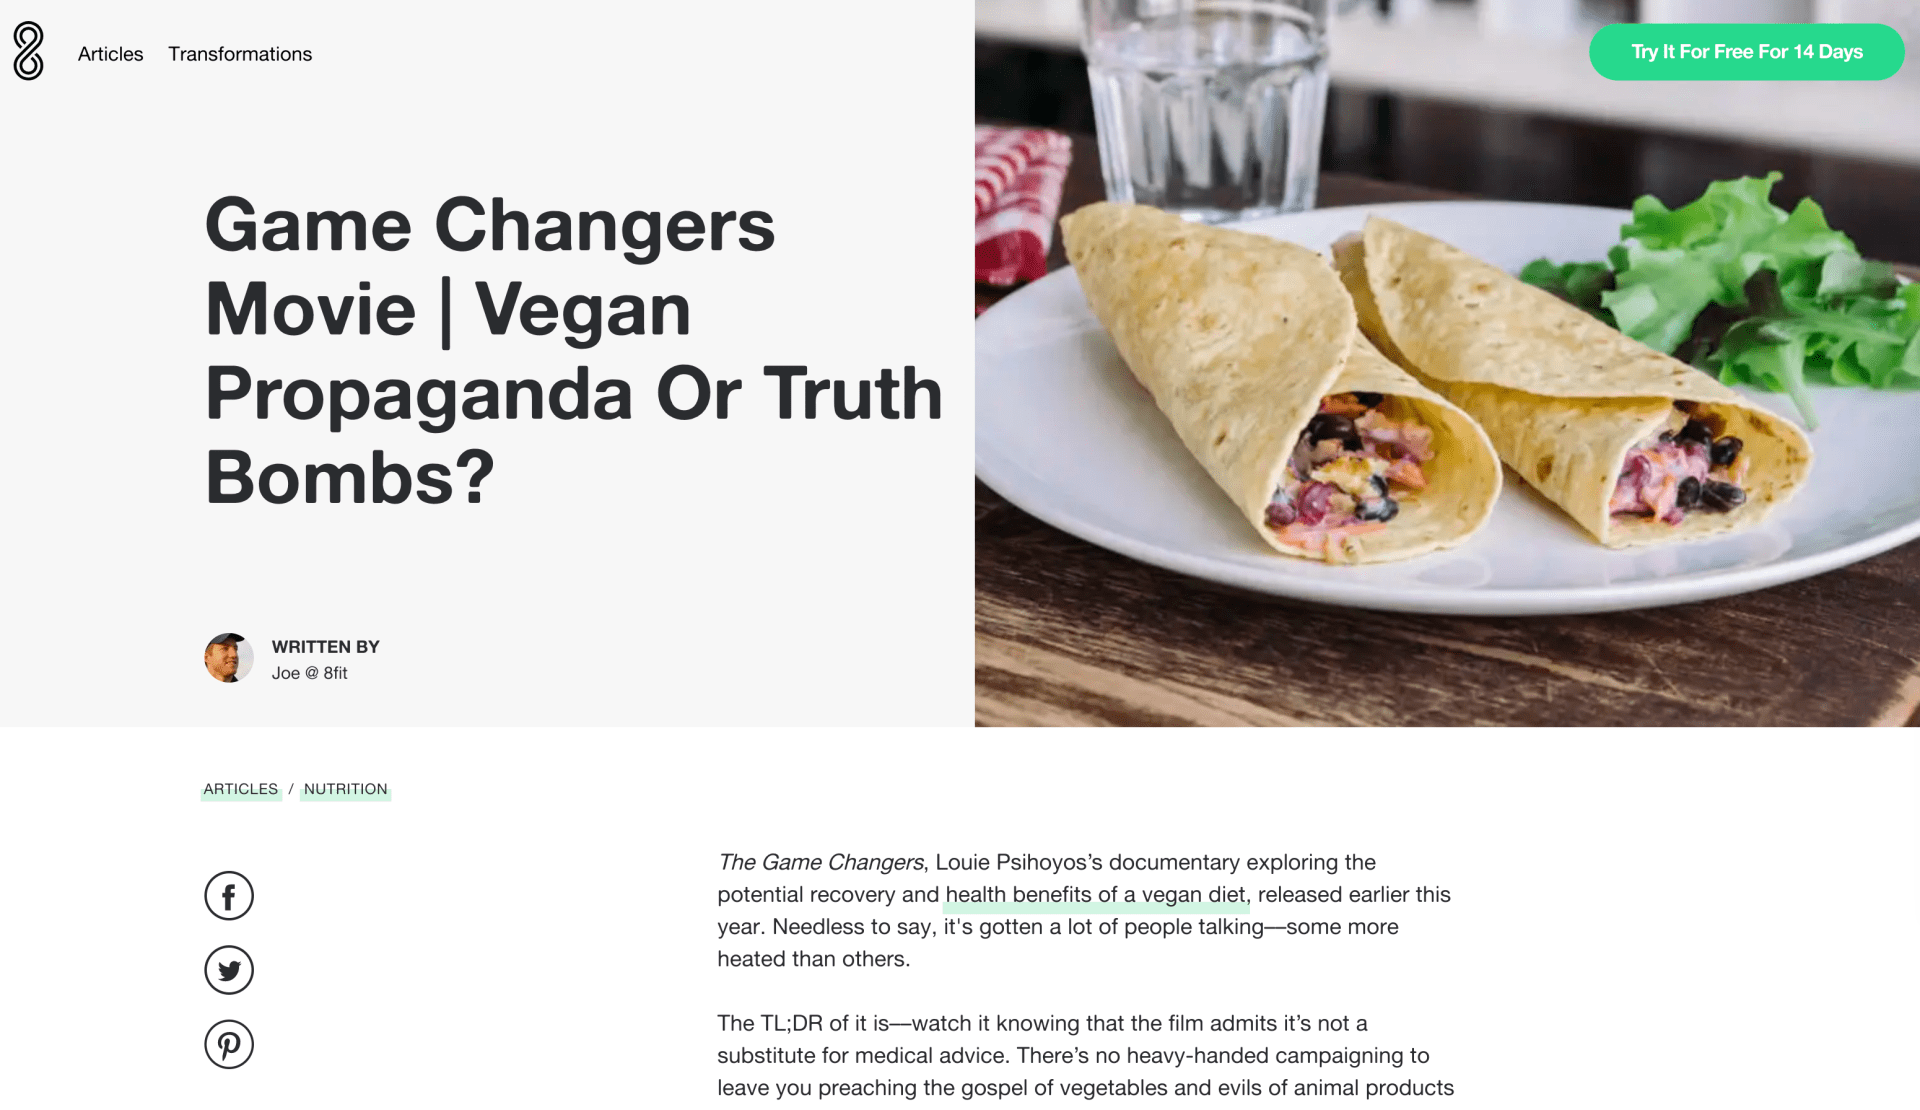 Game Changers Movie | Vegan Propaganda Or Truth Bombs? - 8fit